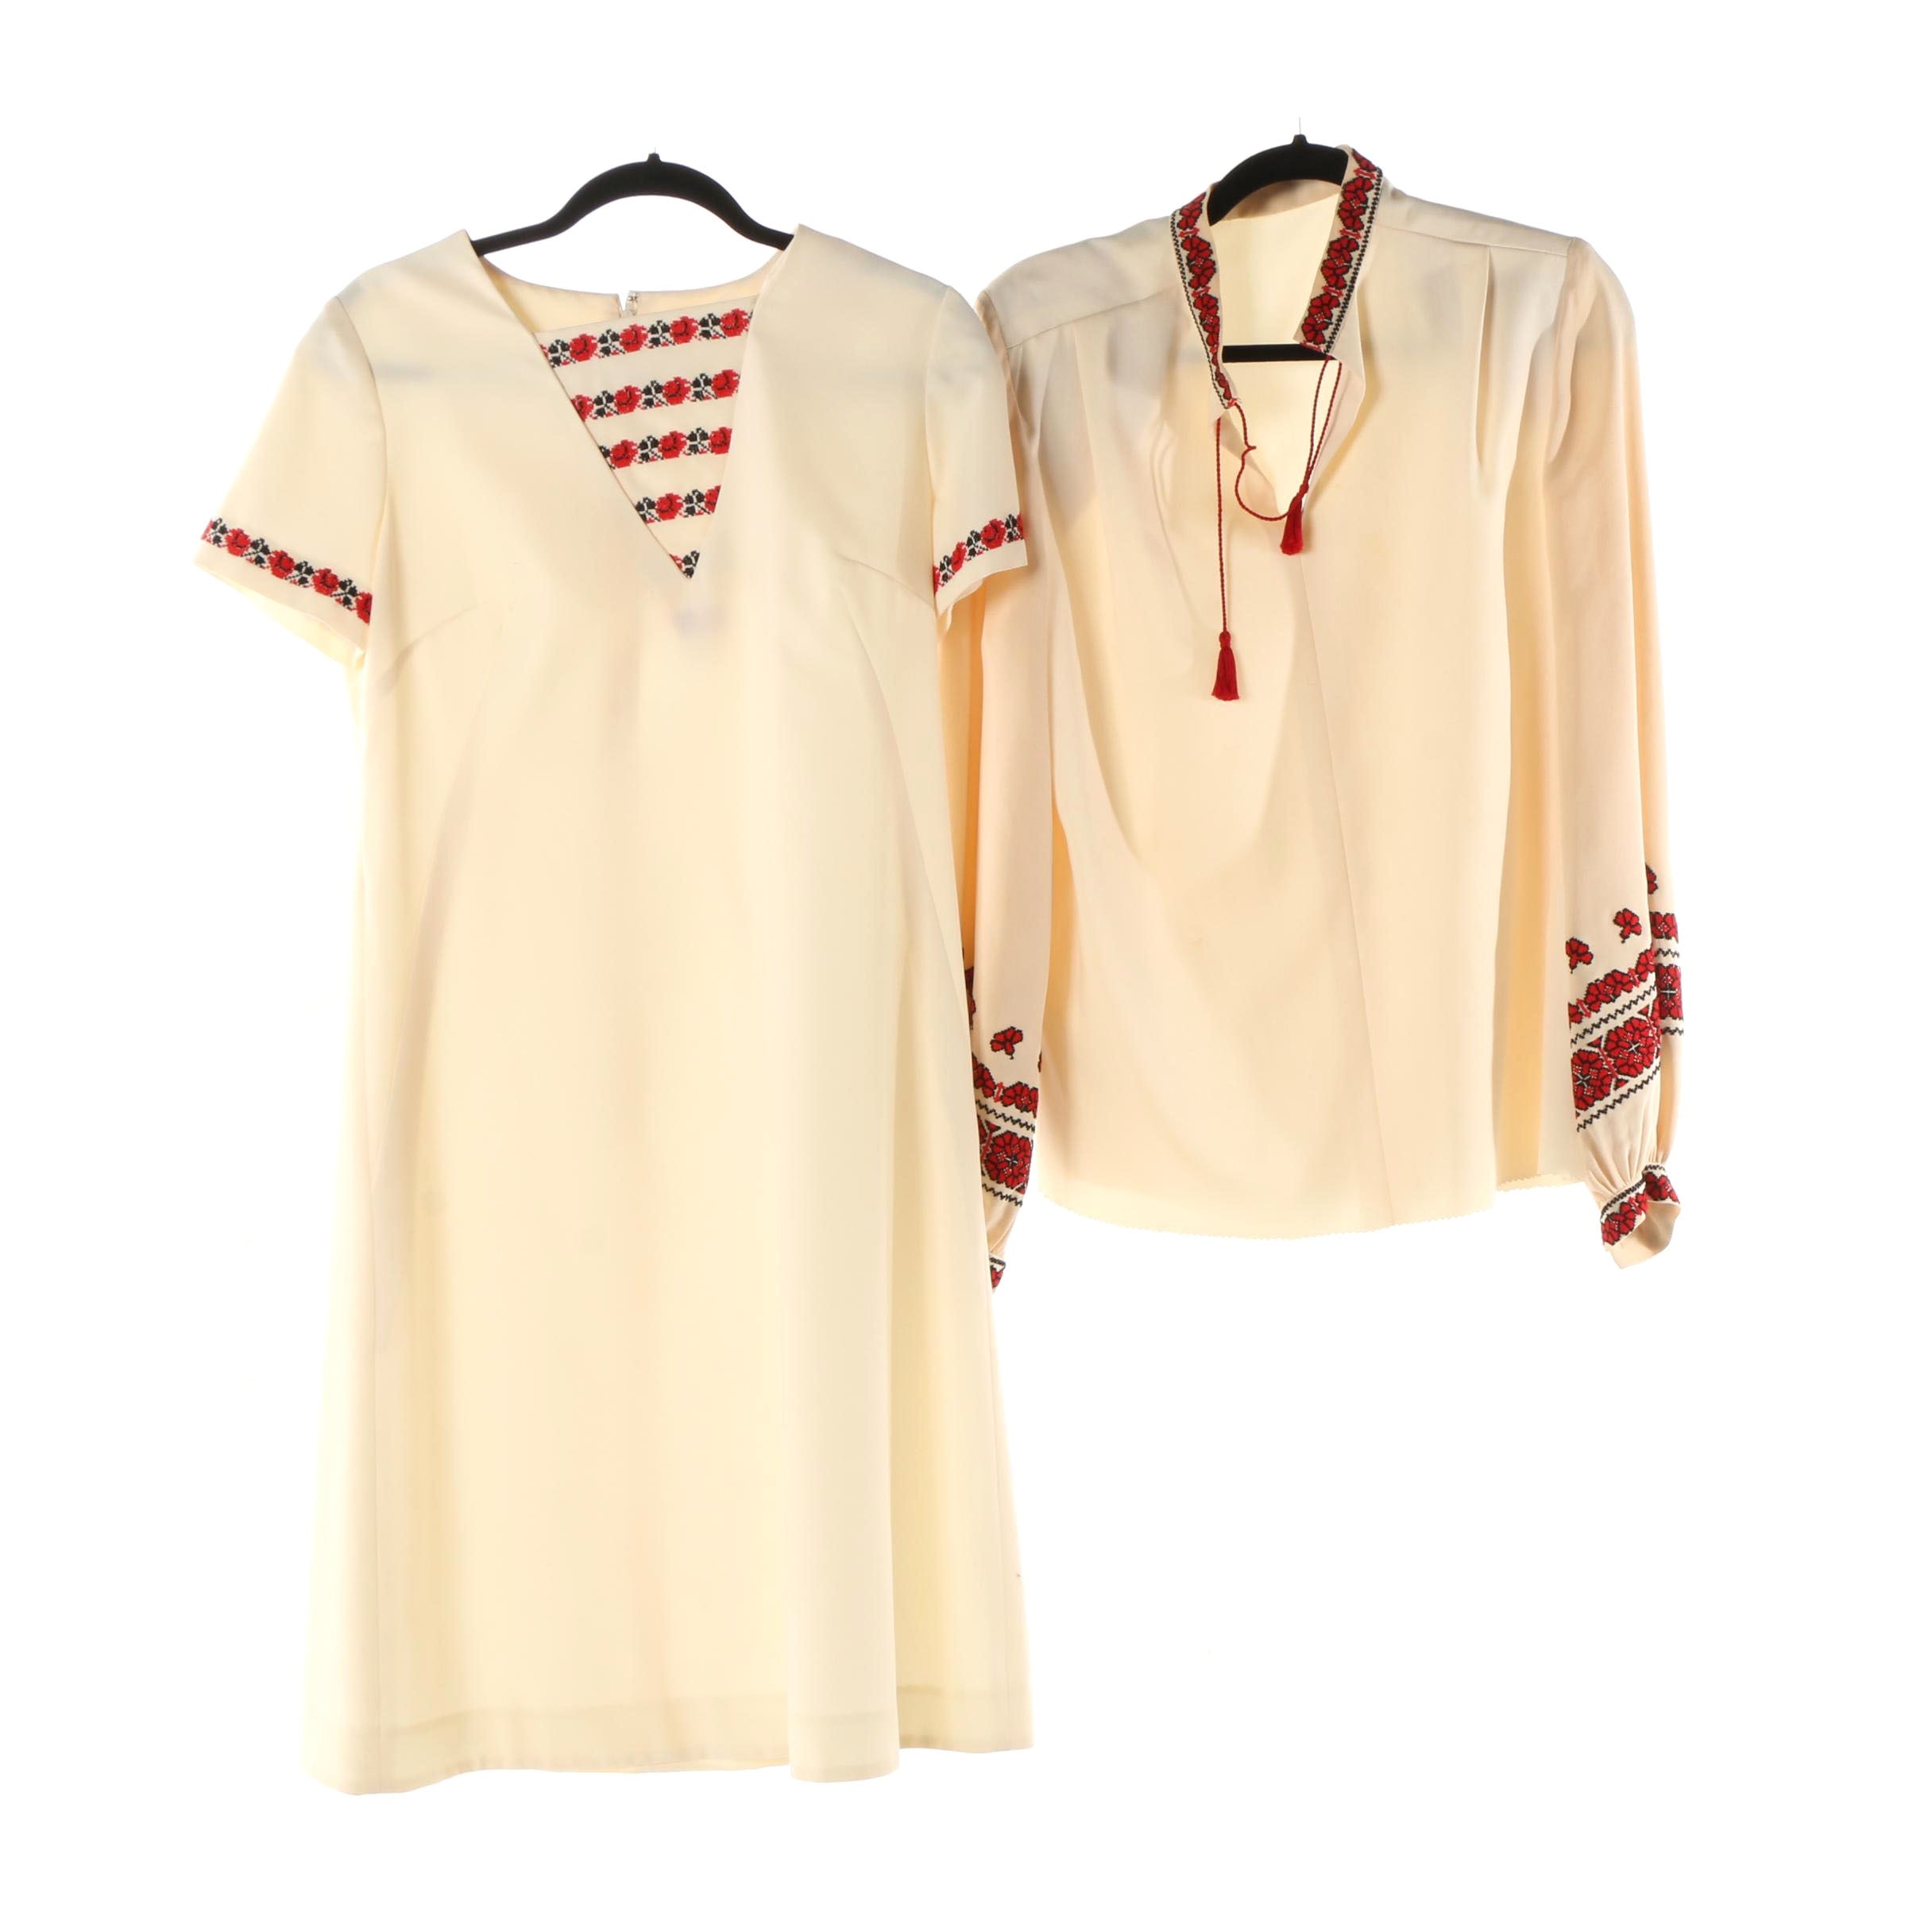 Vintage Shift Dress and Blouse with Eastern European Style Embroidery